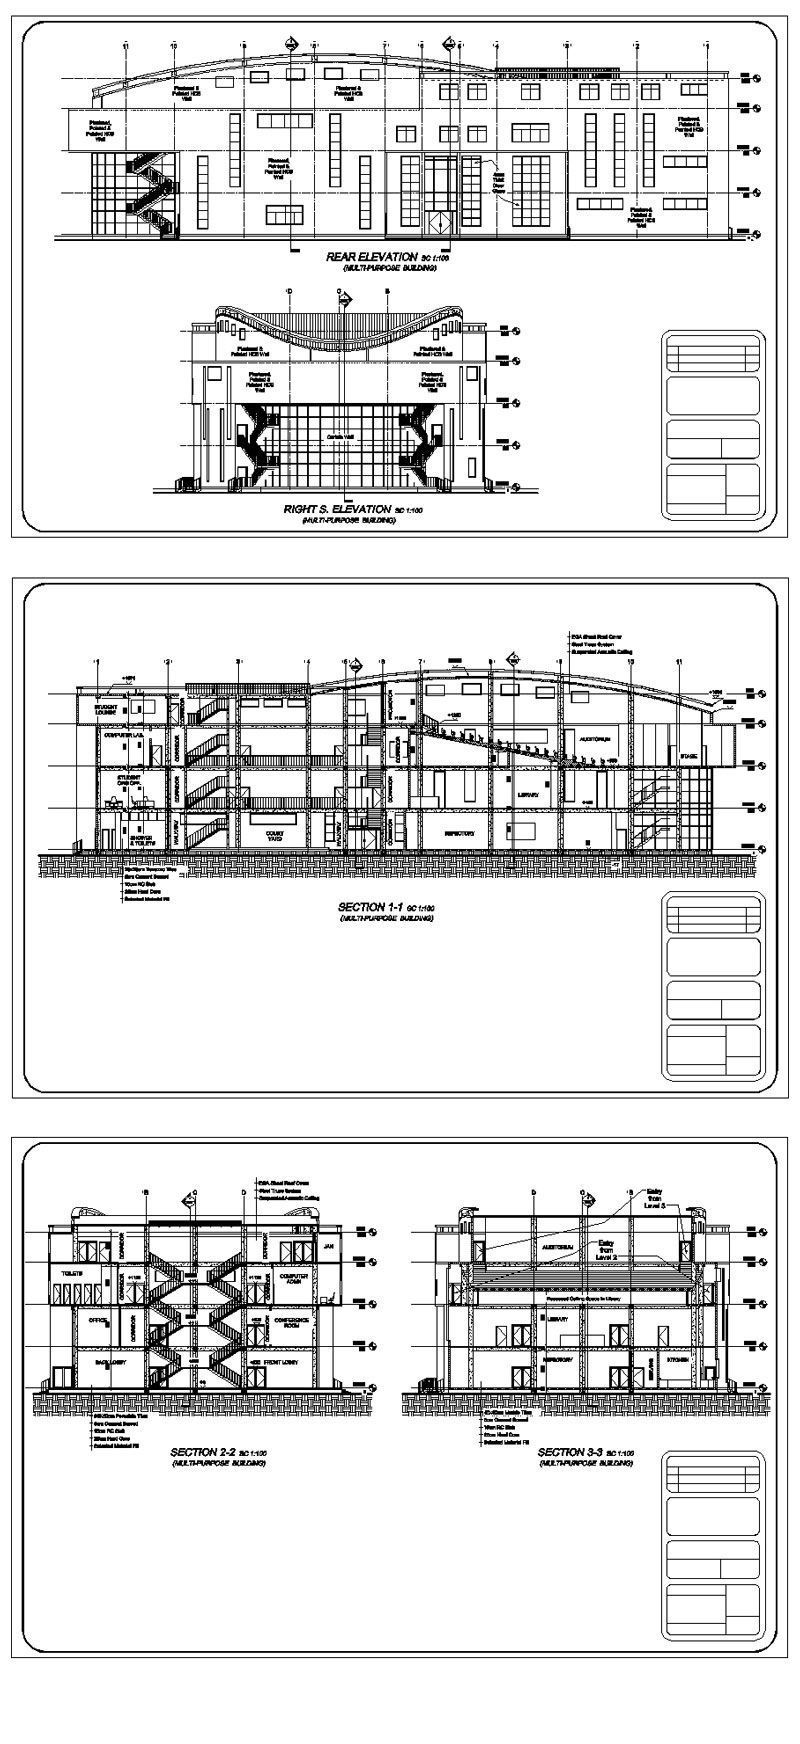 House Plans Cad Drawings Unique Pin On □download Cad Drawings Autocad Blocks